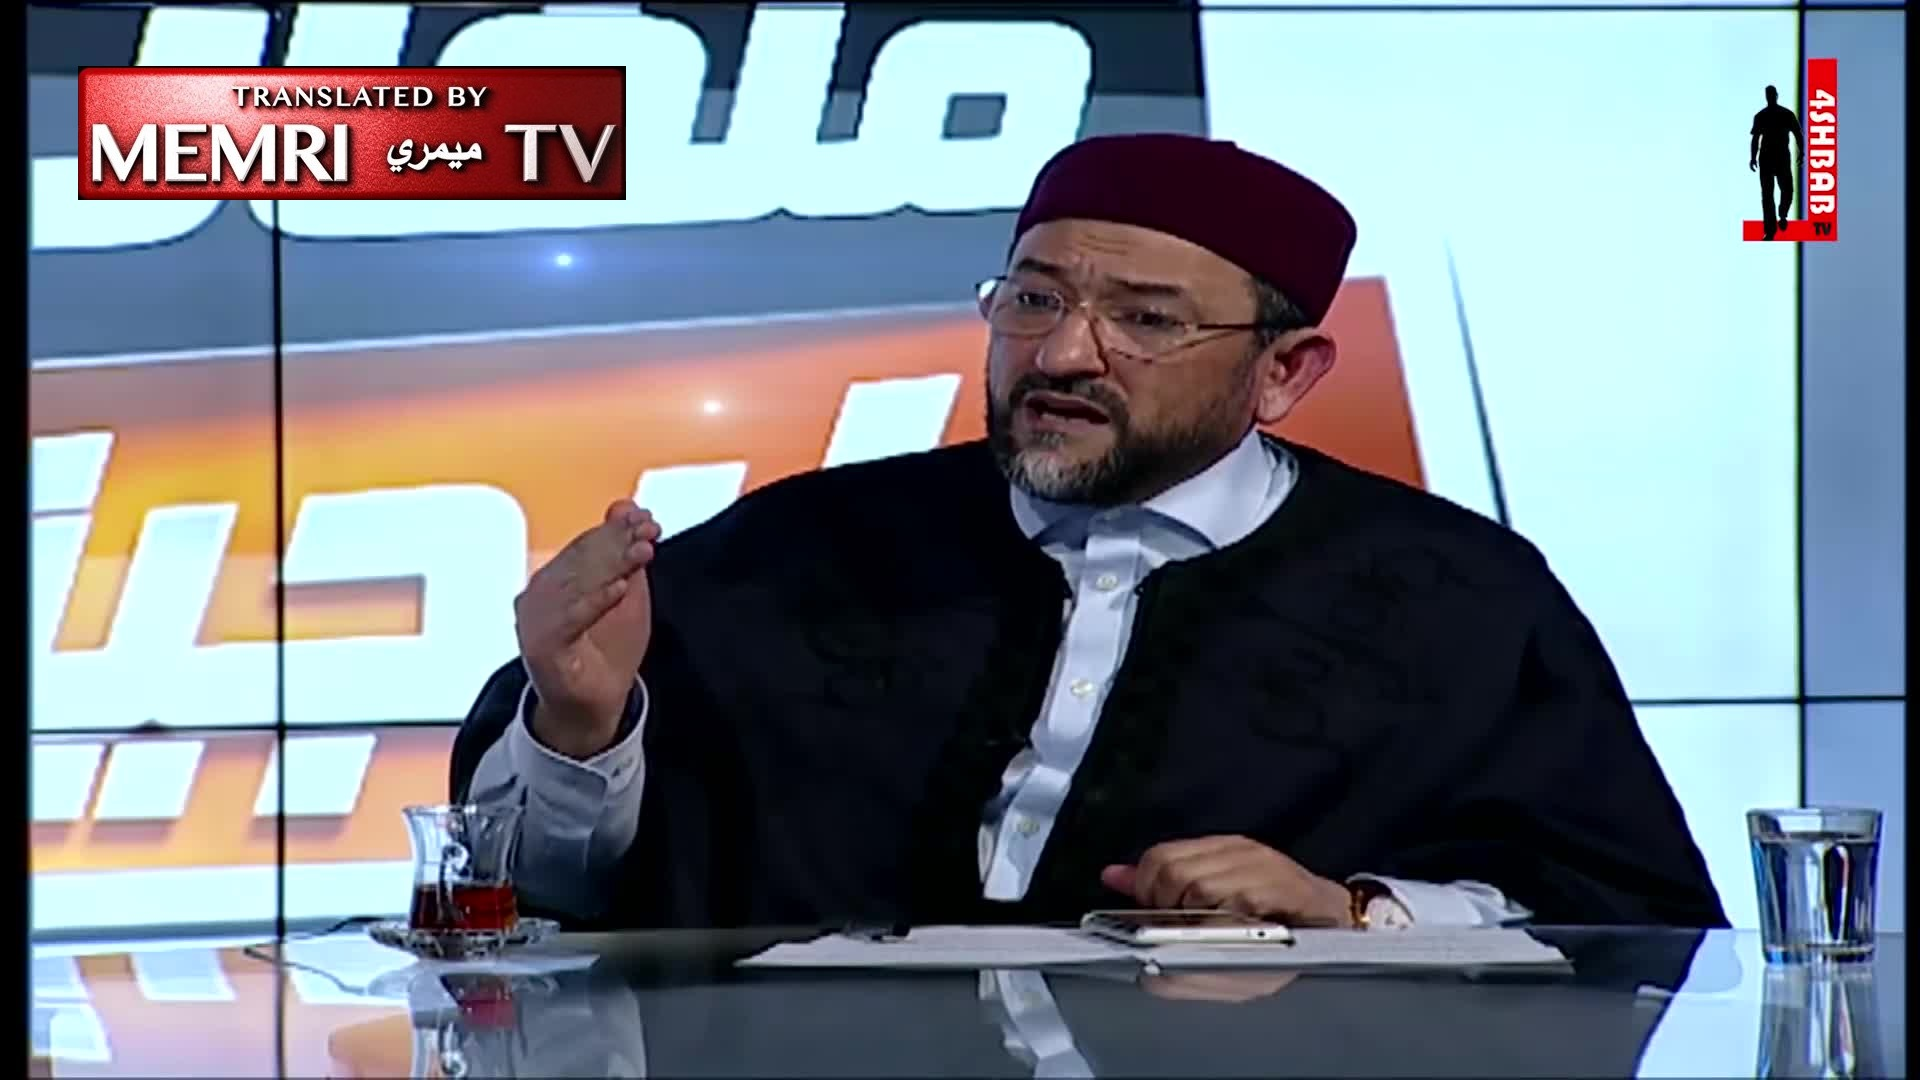 Libyan Cleric Dr. Wanis Al-Mabrouk: The Shari'a Permits a Muslim to Love a Jew or a Christian